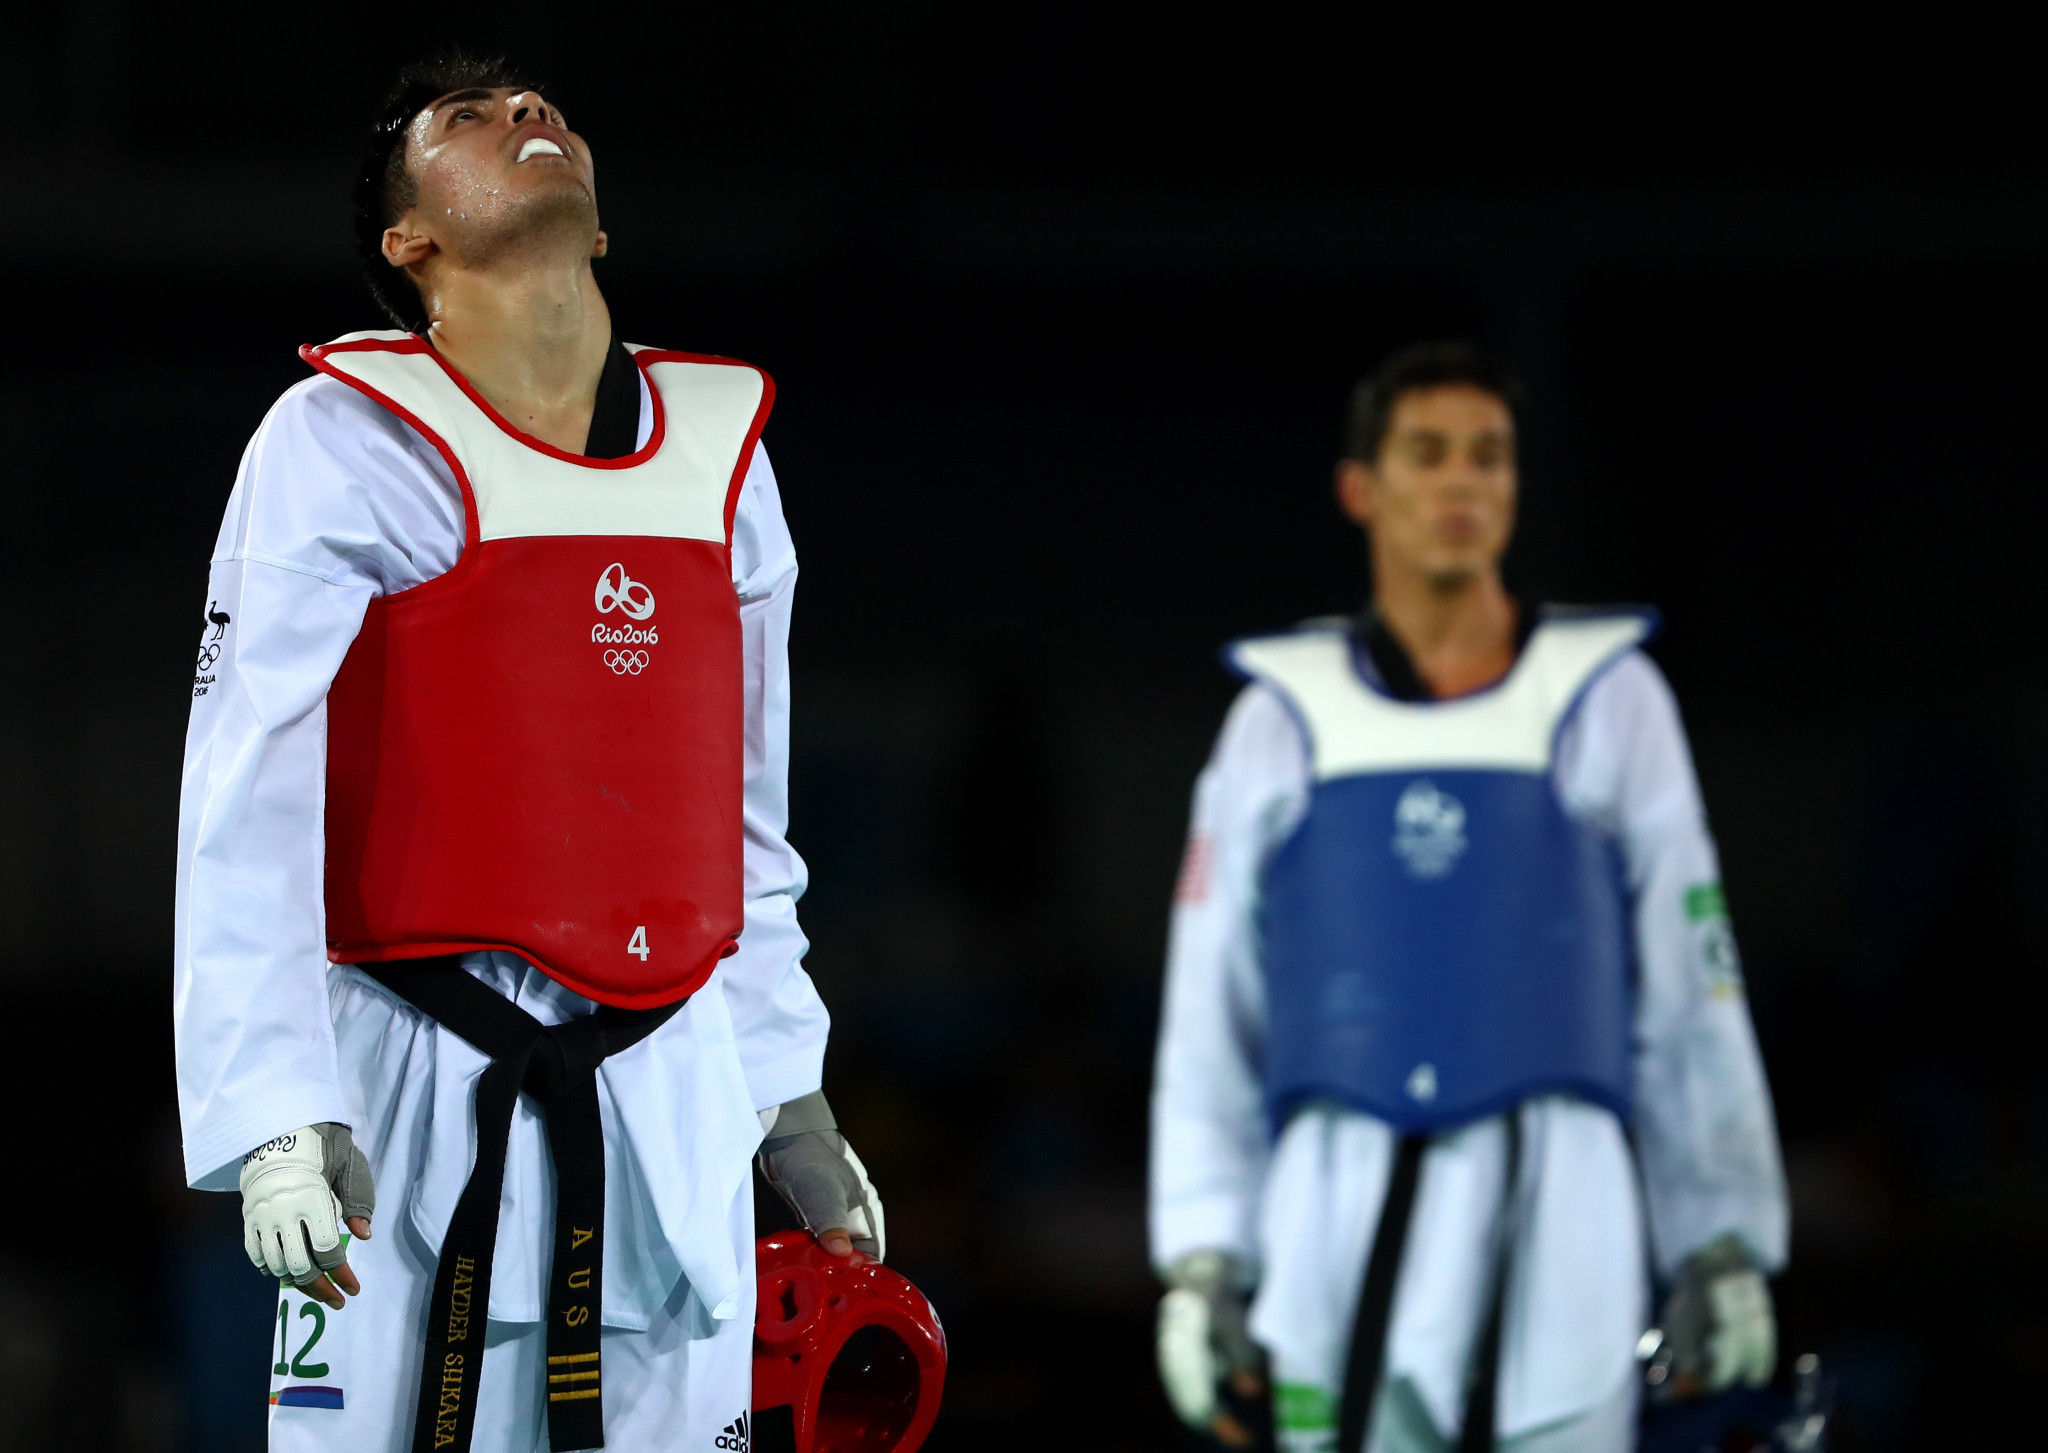 Australia has failed to pick up a taekwondo medal in the past four Olympic Games ©Getty Images